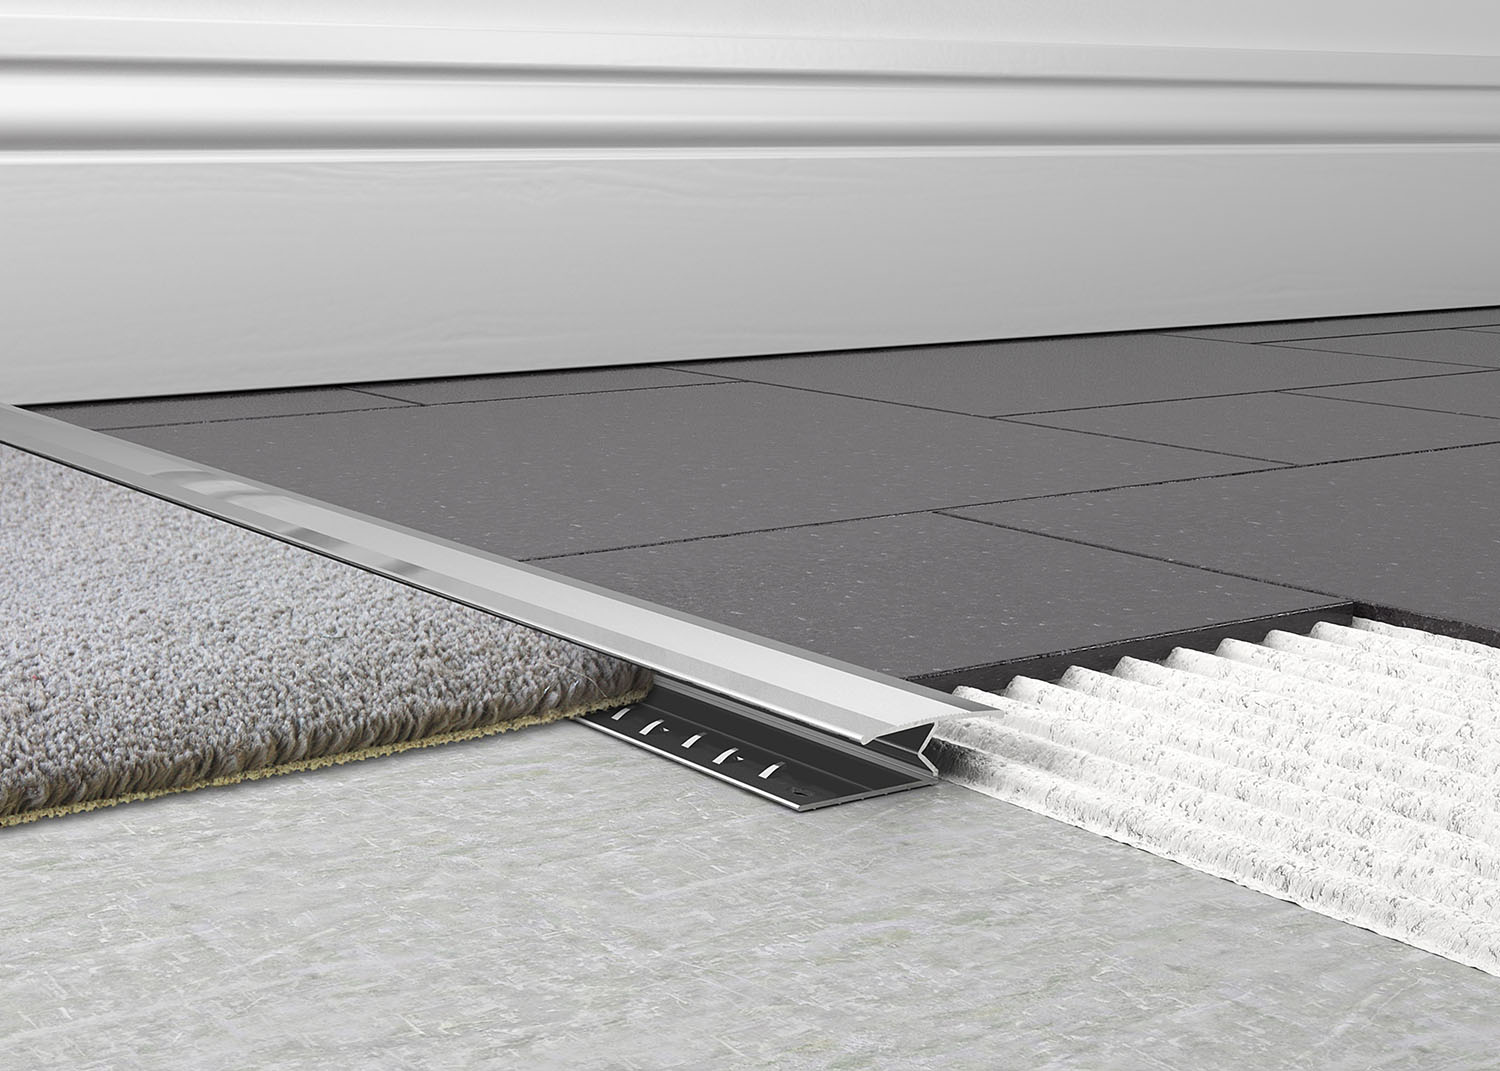 Carpet to tile trim tileasy knock down carpet to tile trim has been designed to give a neat transition between most dailygadgetfo Gallery